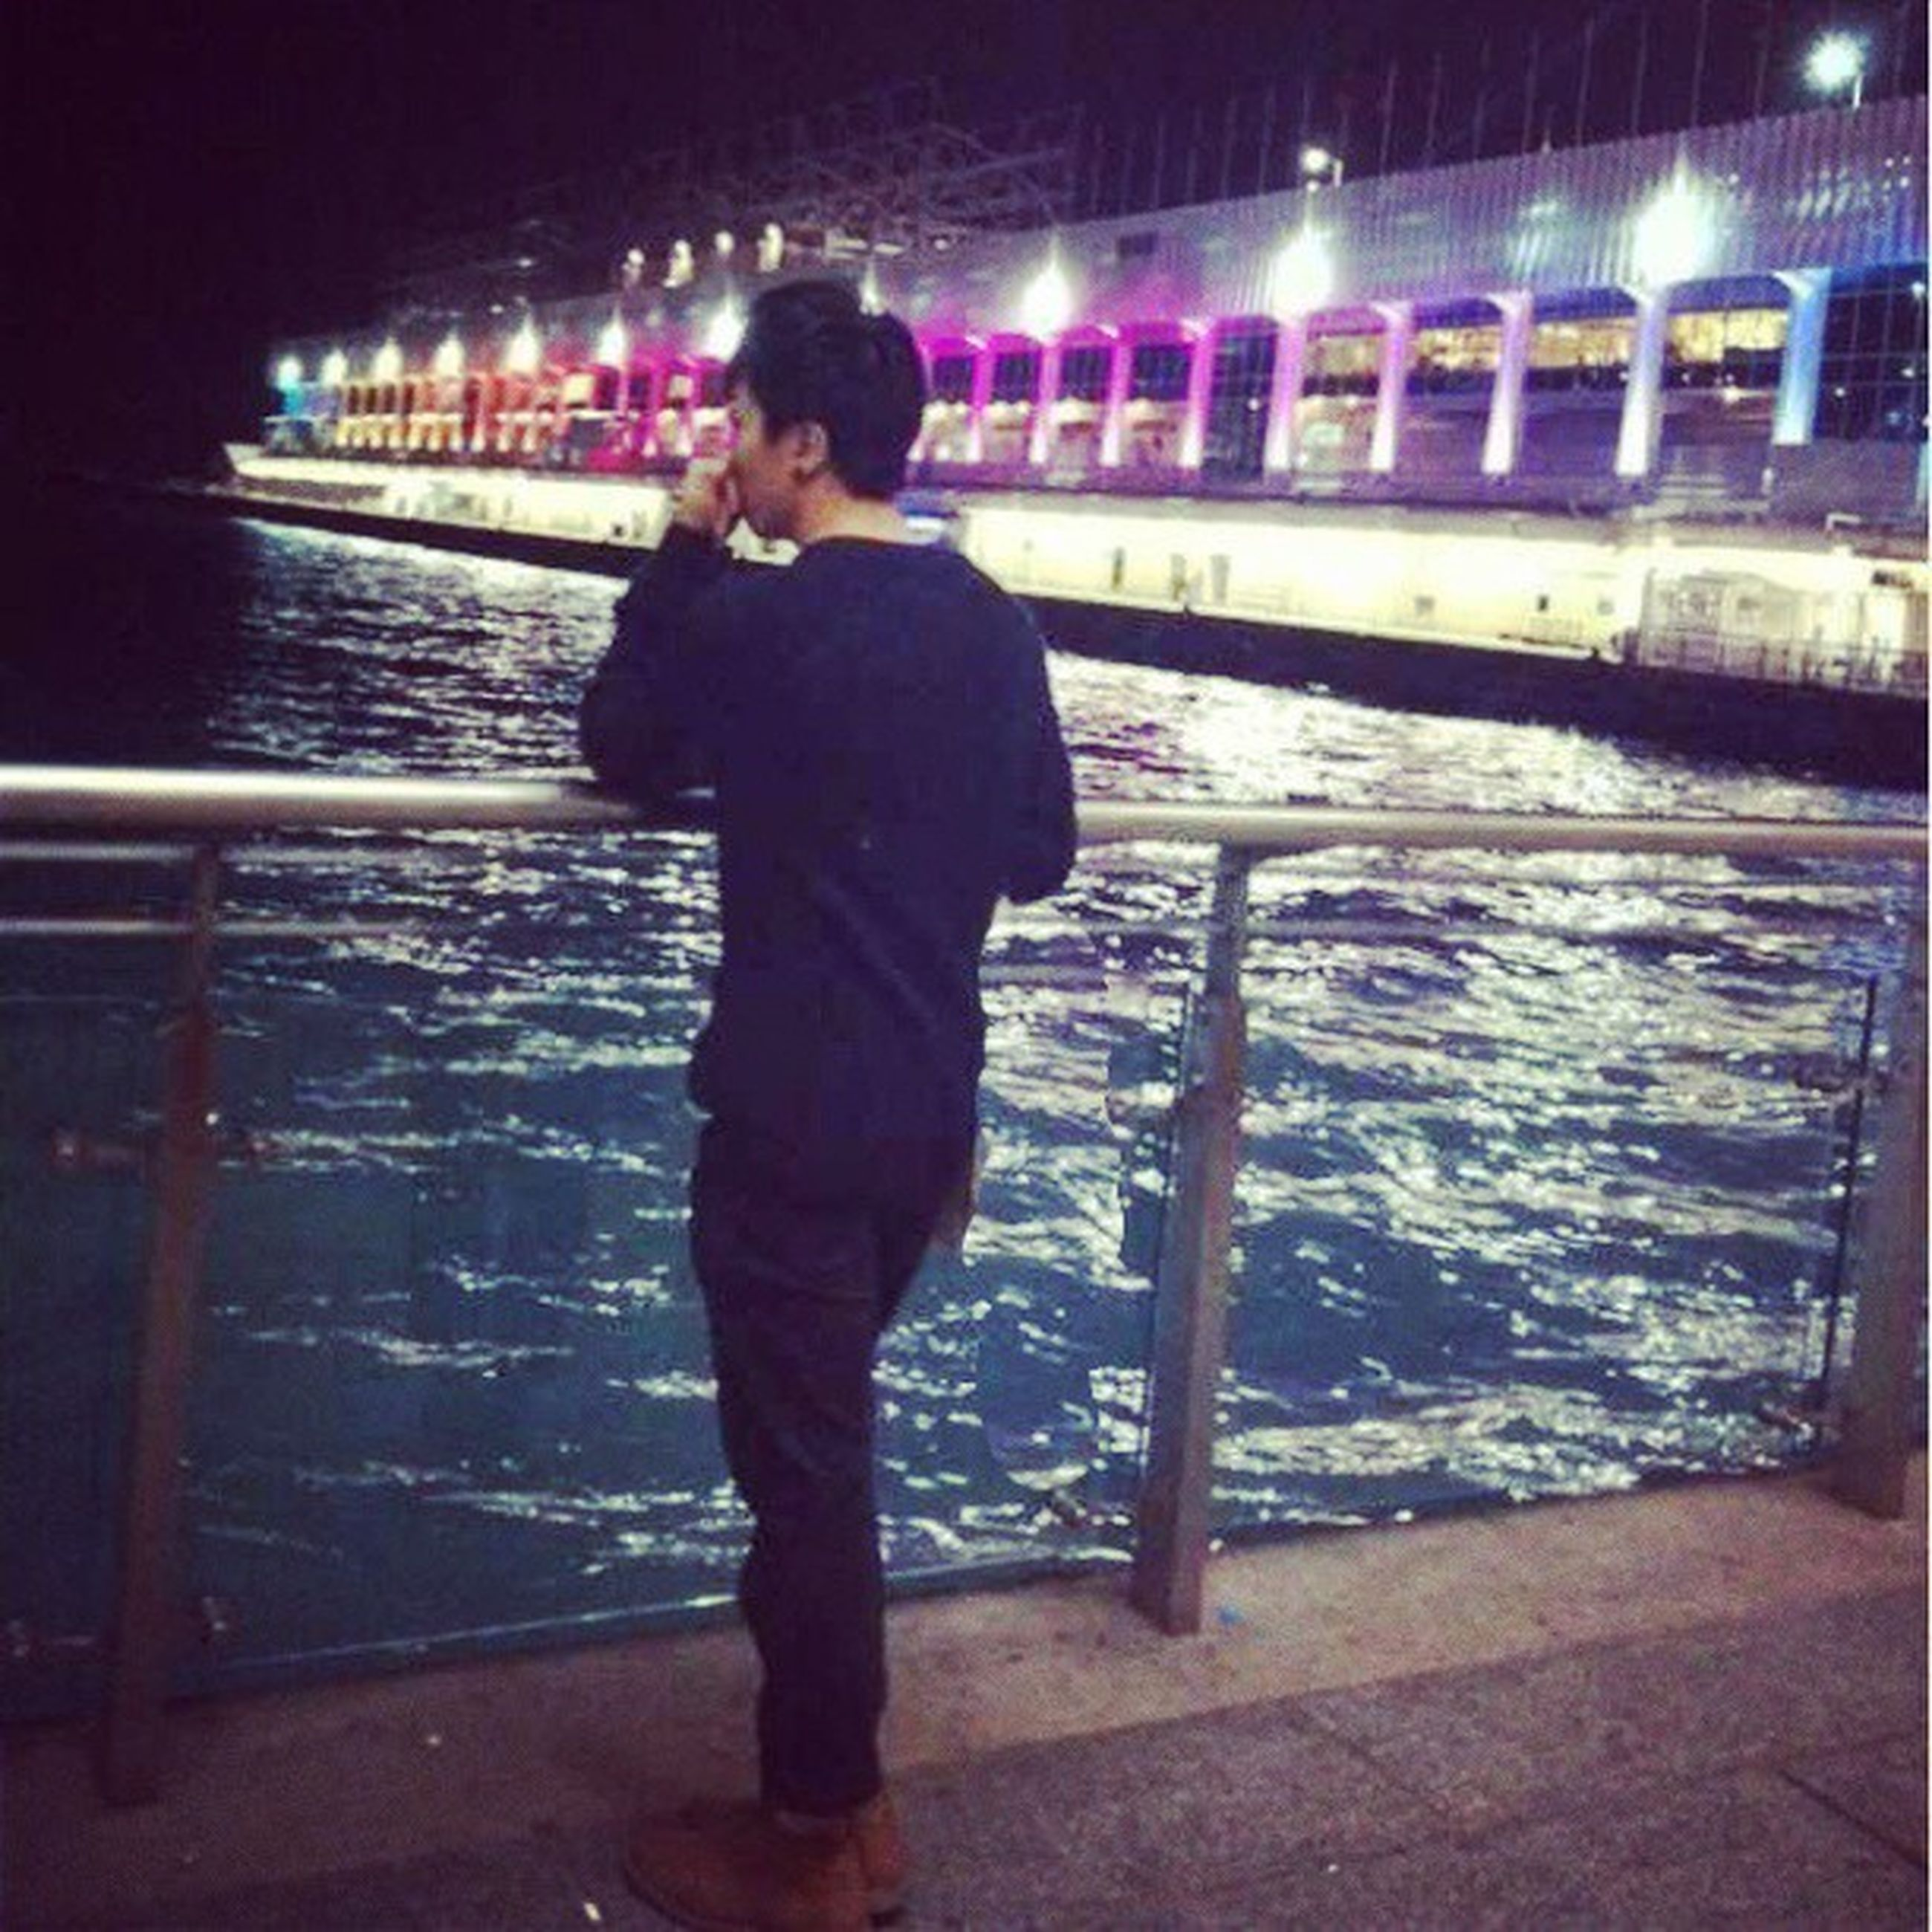 night, full length, illuminated, lifestyles, standing, rear view, casual clothing, leisure activity, three quarter length, men, railing, built structure, water, indoors, architecture, walking, transportation, reflection